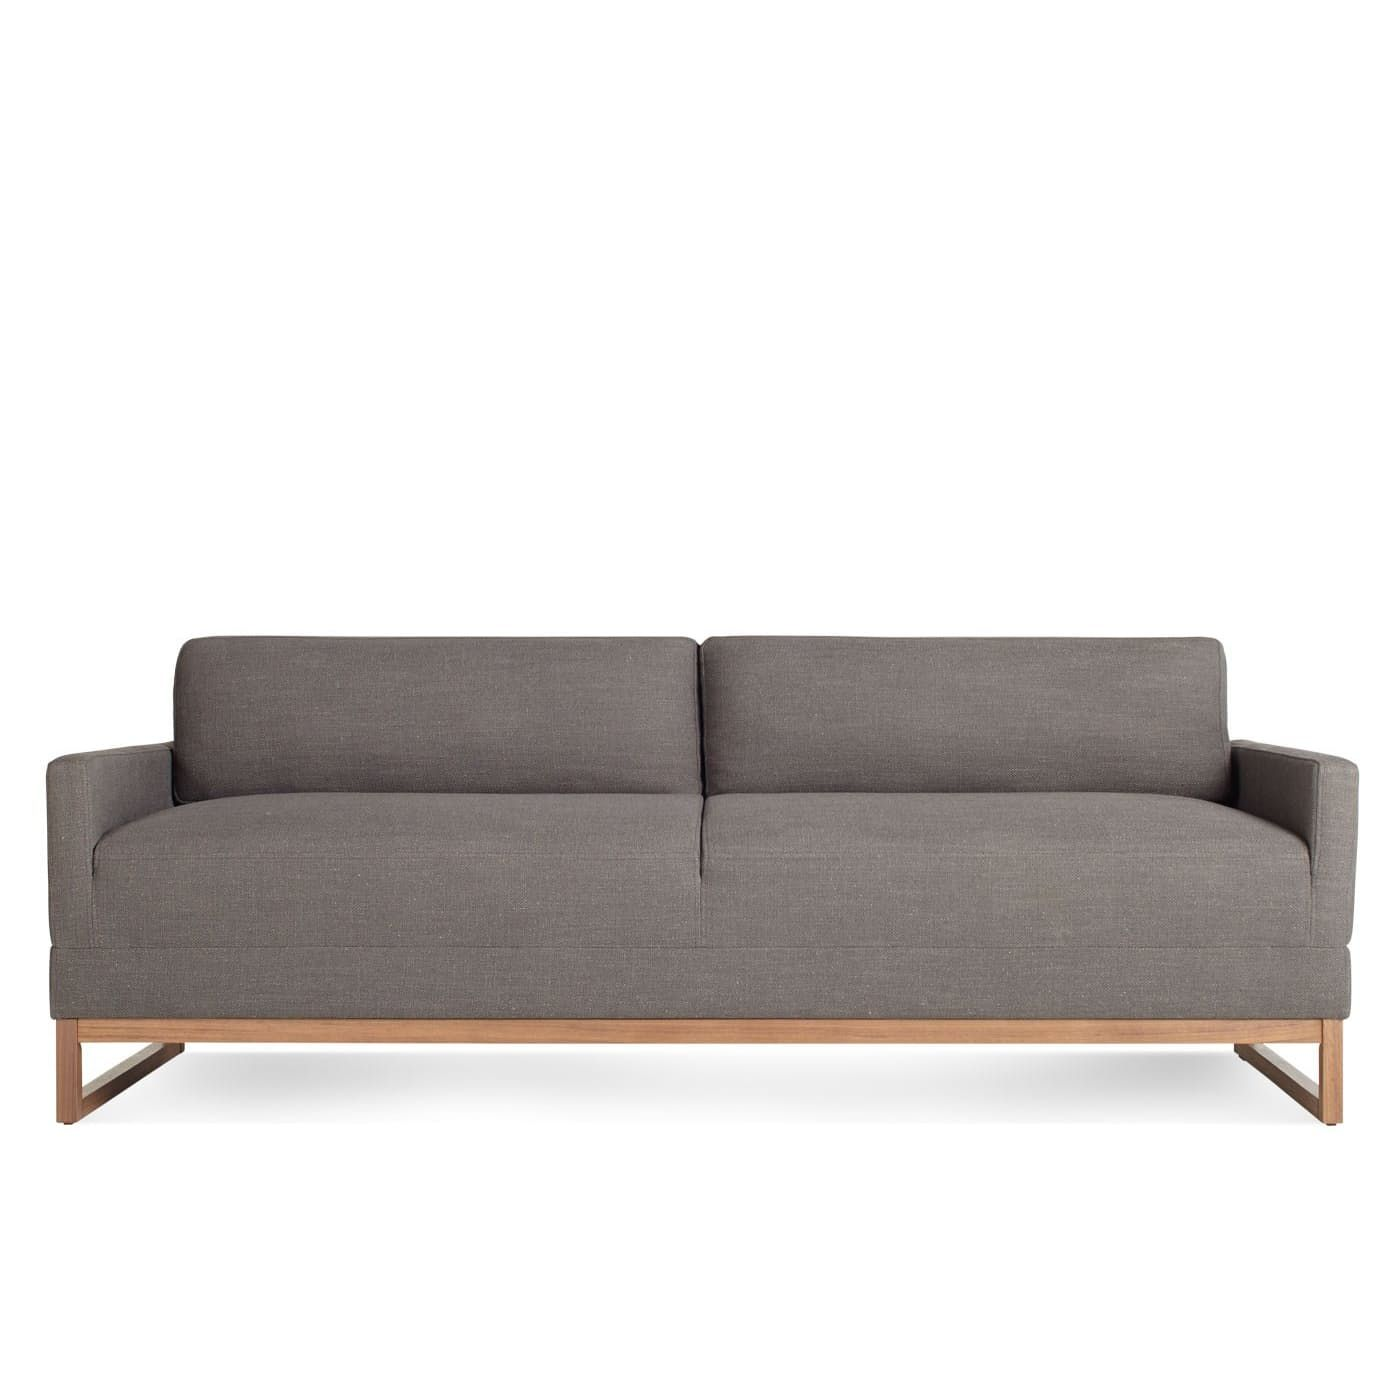 good sofa bed singapore manstad corner with storage the best sleeper sofas and beds